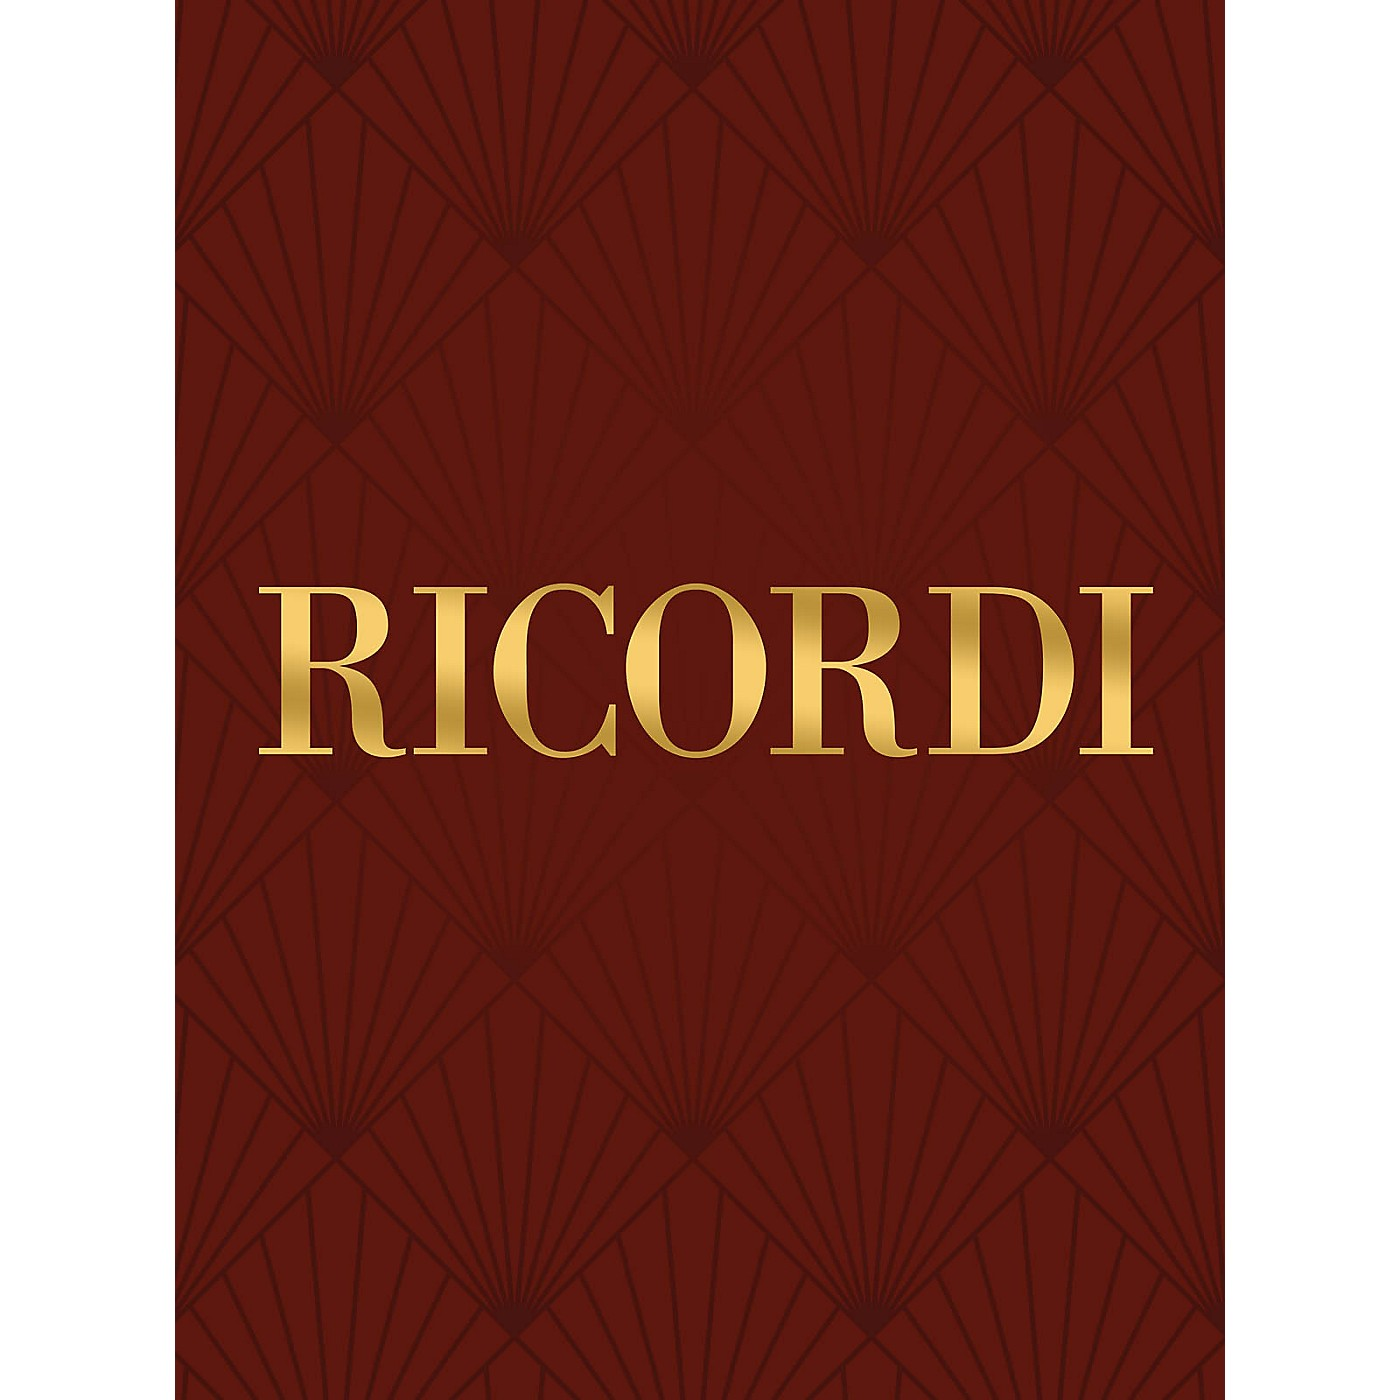 Ricordi 24 Caprices For Violin Unacc String Solo Series by Jacques-Pierre Rode Edited by Borciani thumbnail